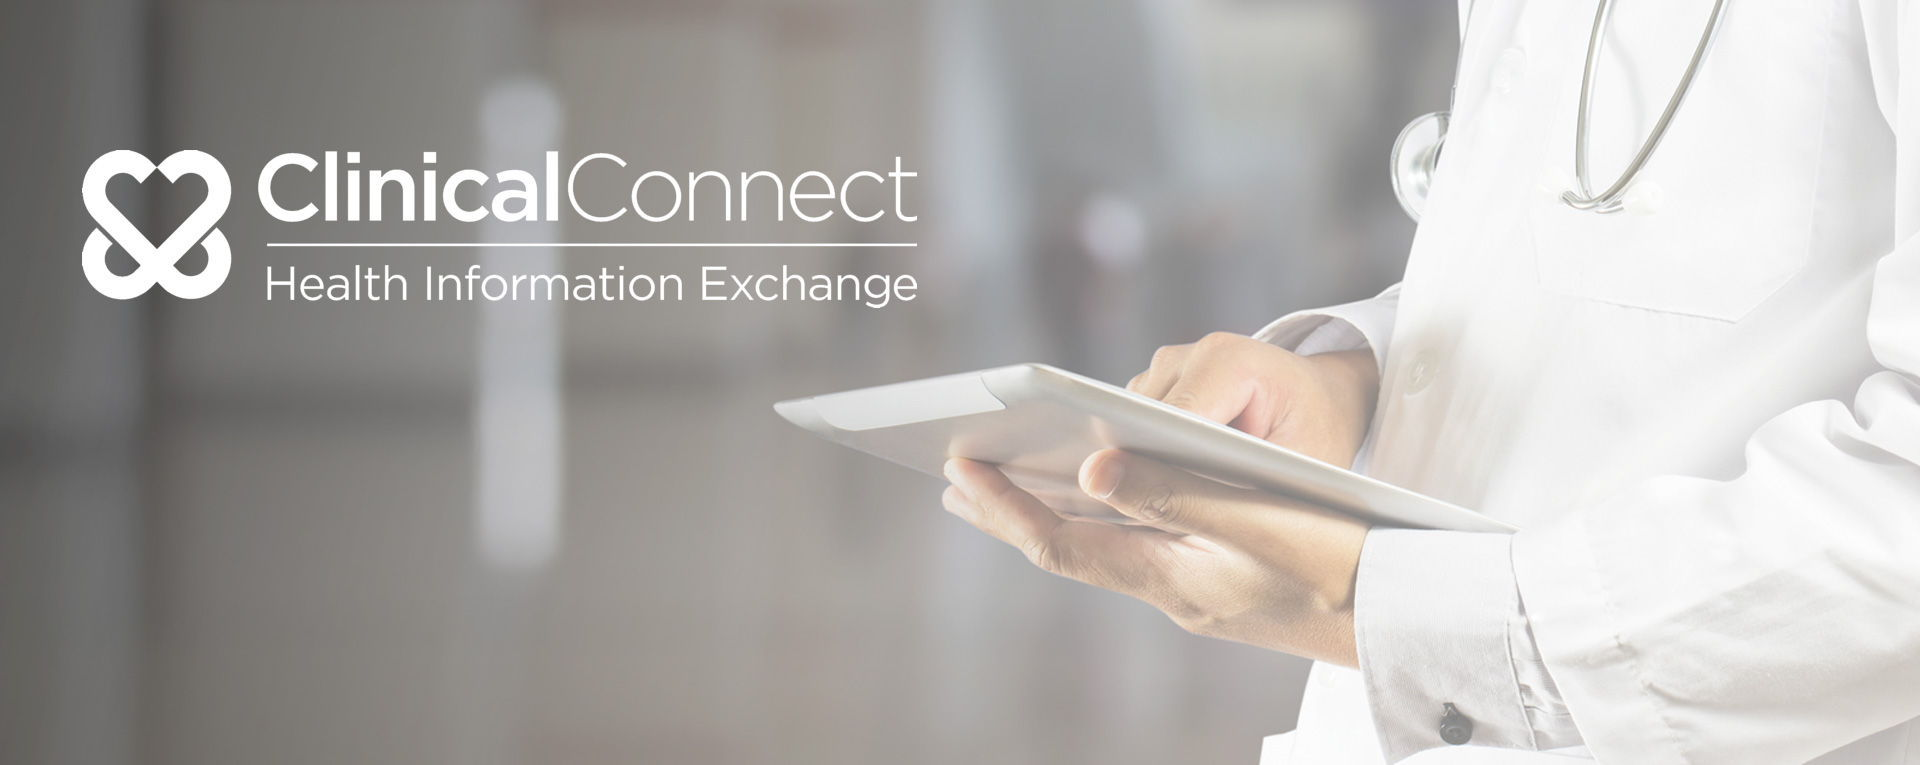 Clinical Connect HIE